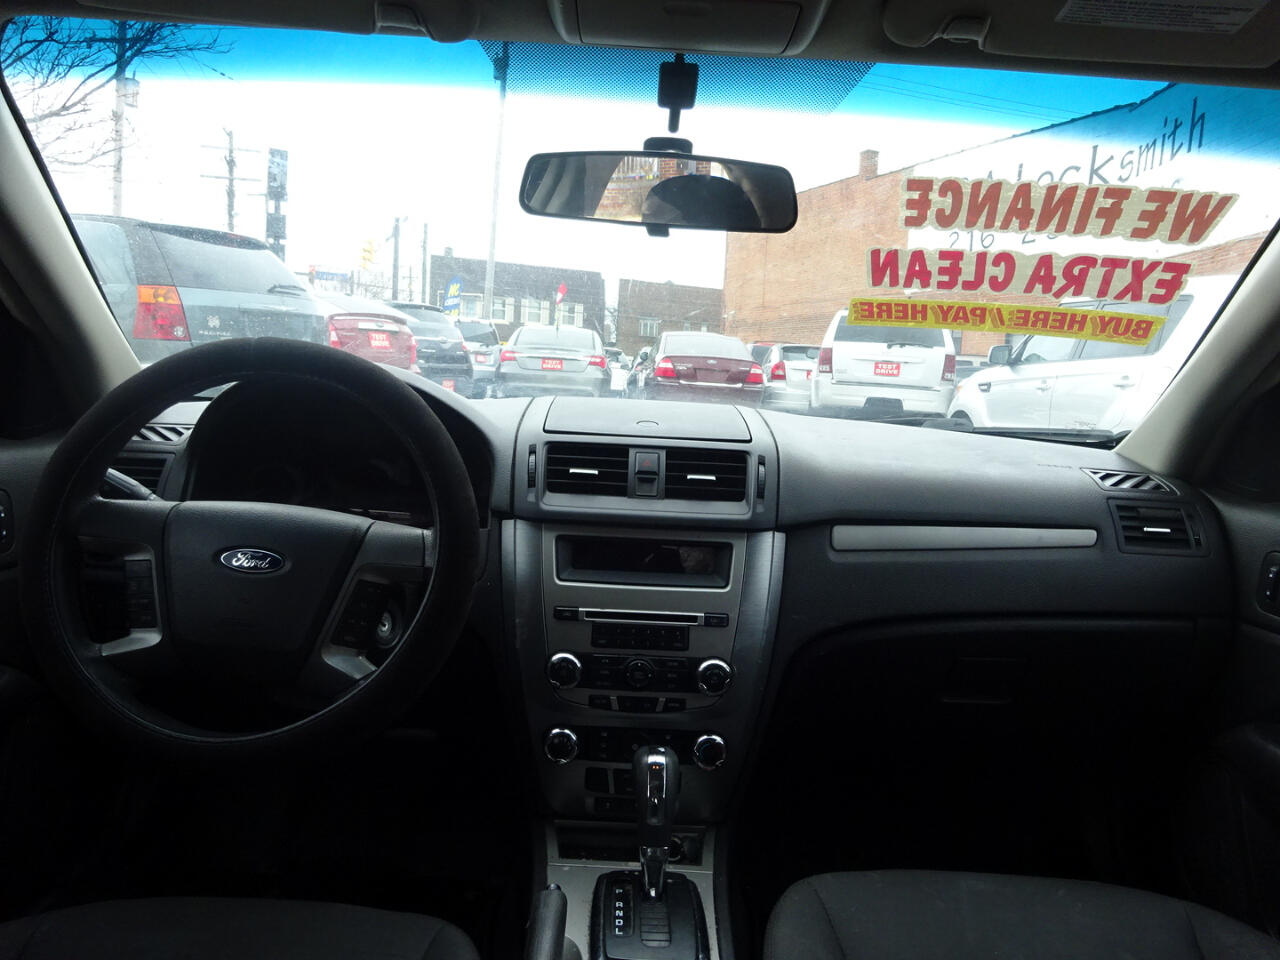 2009 Ford Fusion 4dr Sdn V6 SE FWD